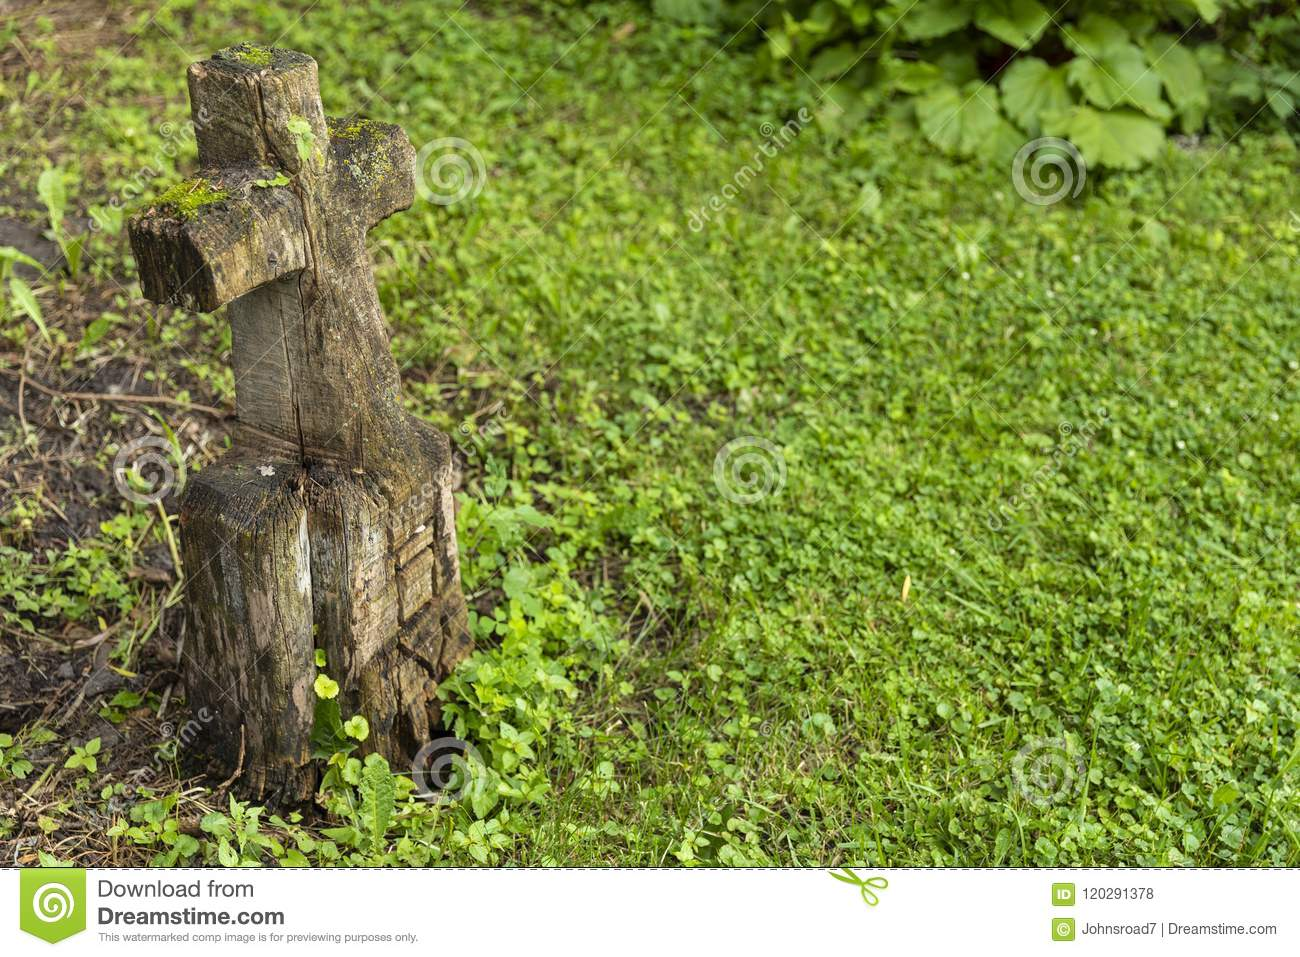 Carved Wooden Grave Marker Stock Photo Image Of Backyard 120291378